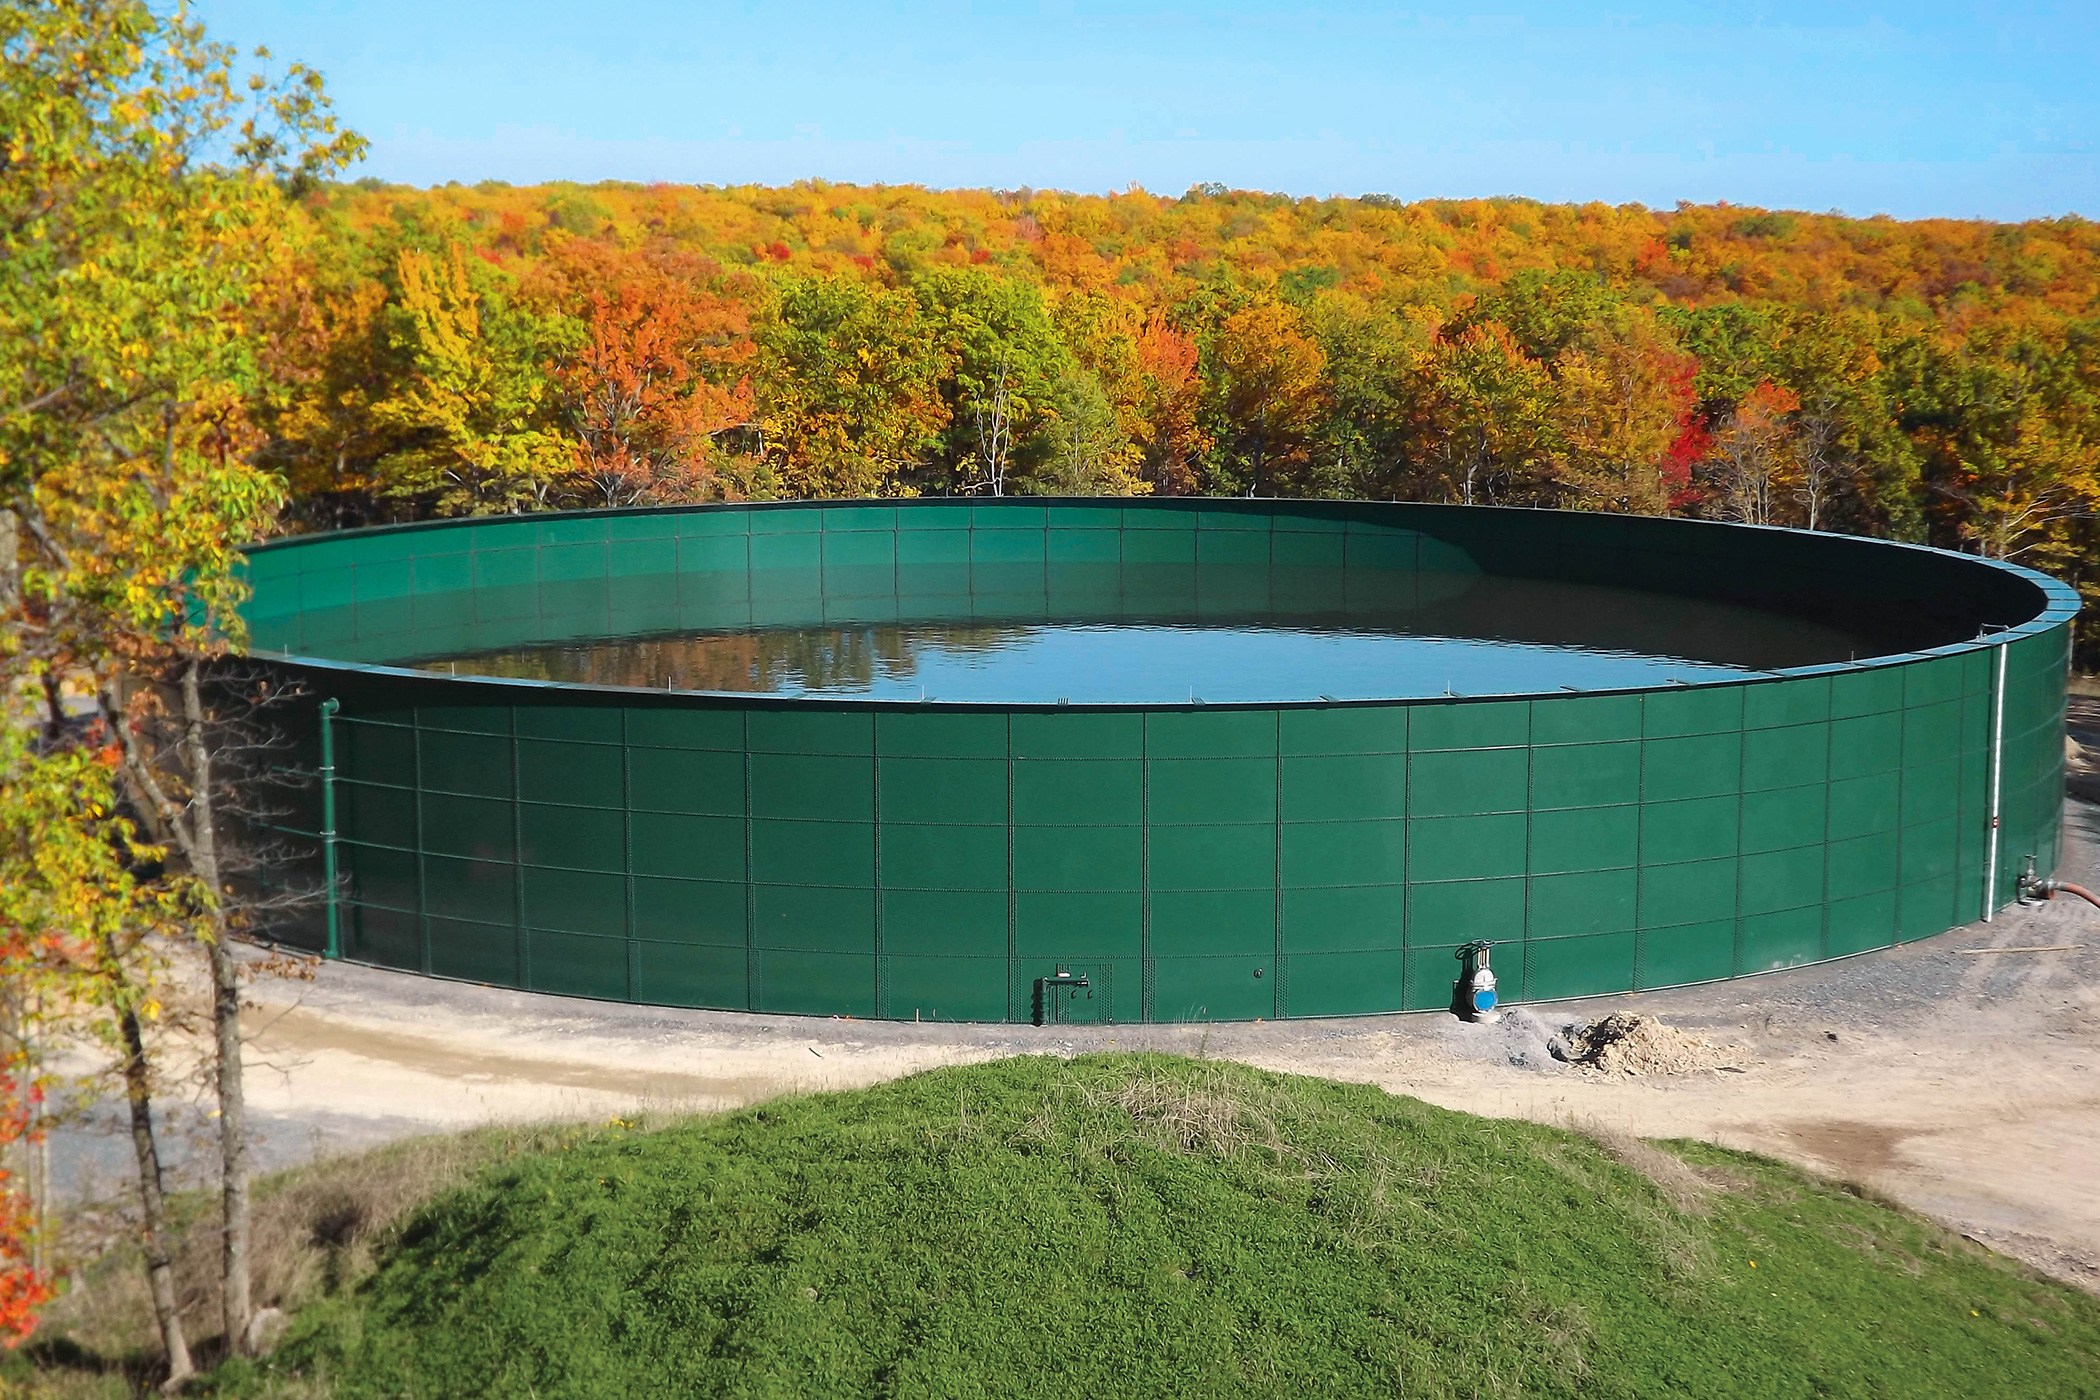 Bolted steel Process water storage